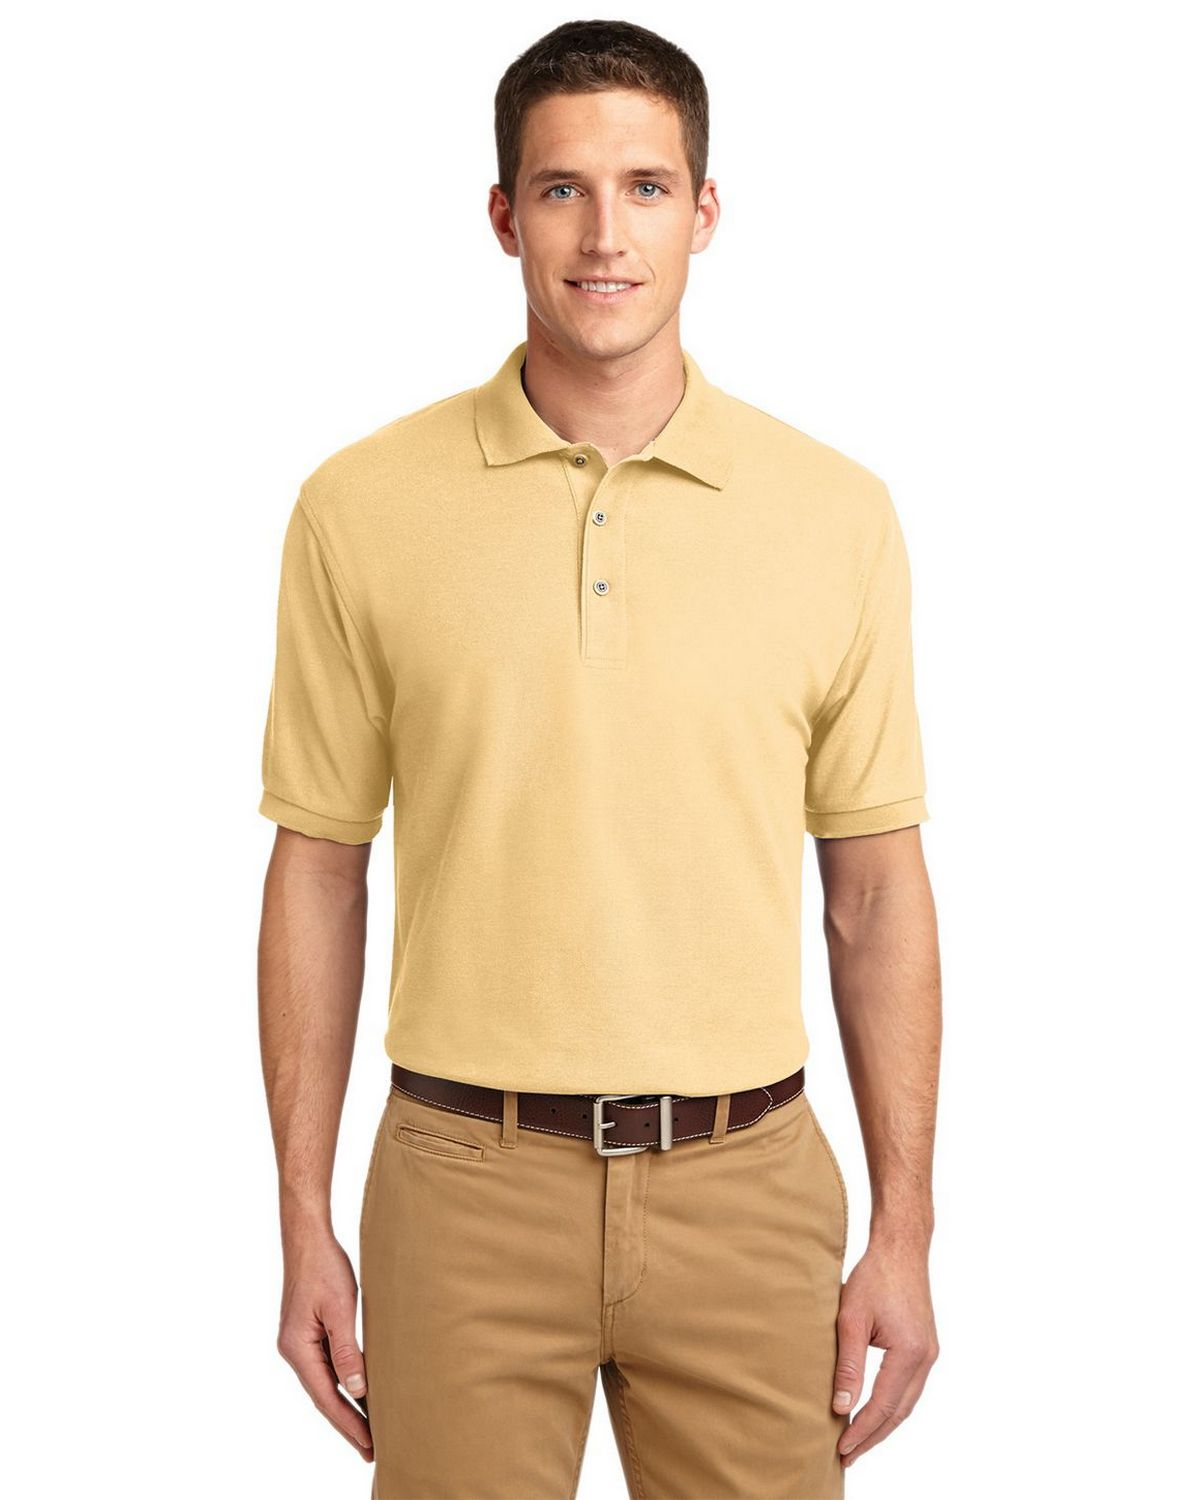 Port Authority K500 Men's Silk Touch Polo - Banana - XS #silk